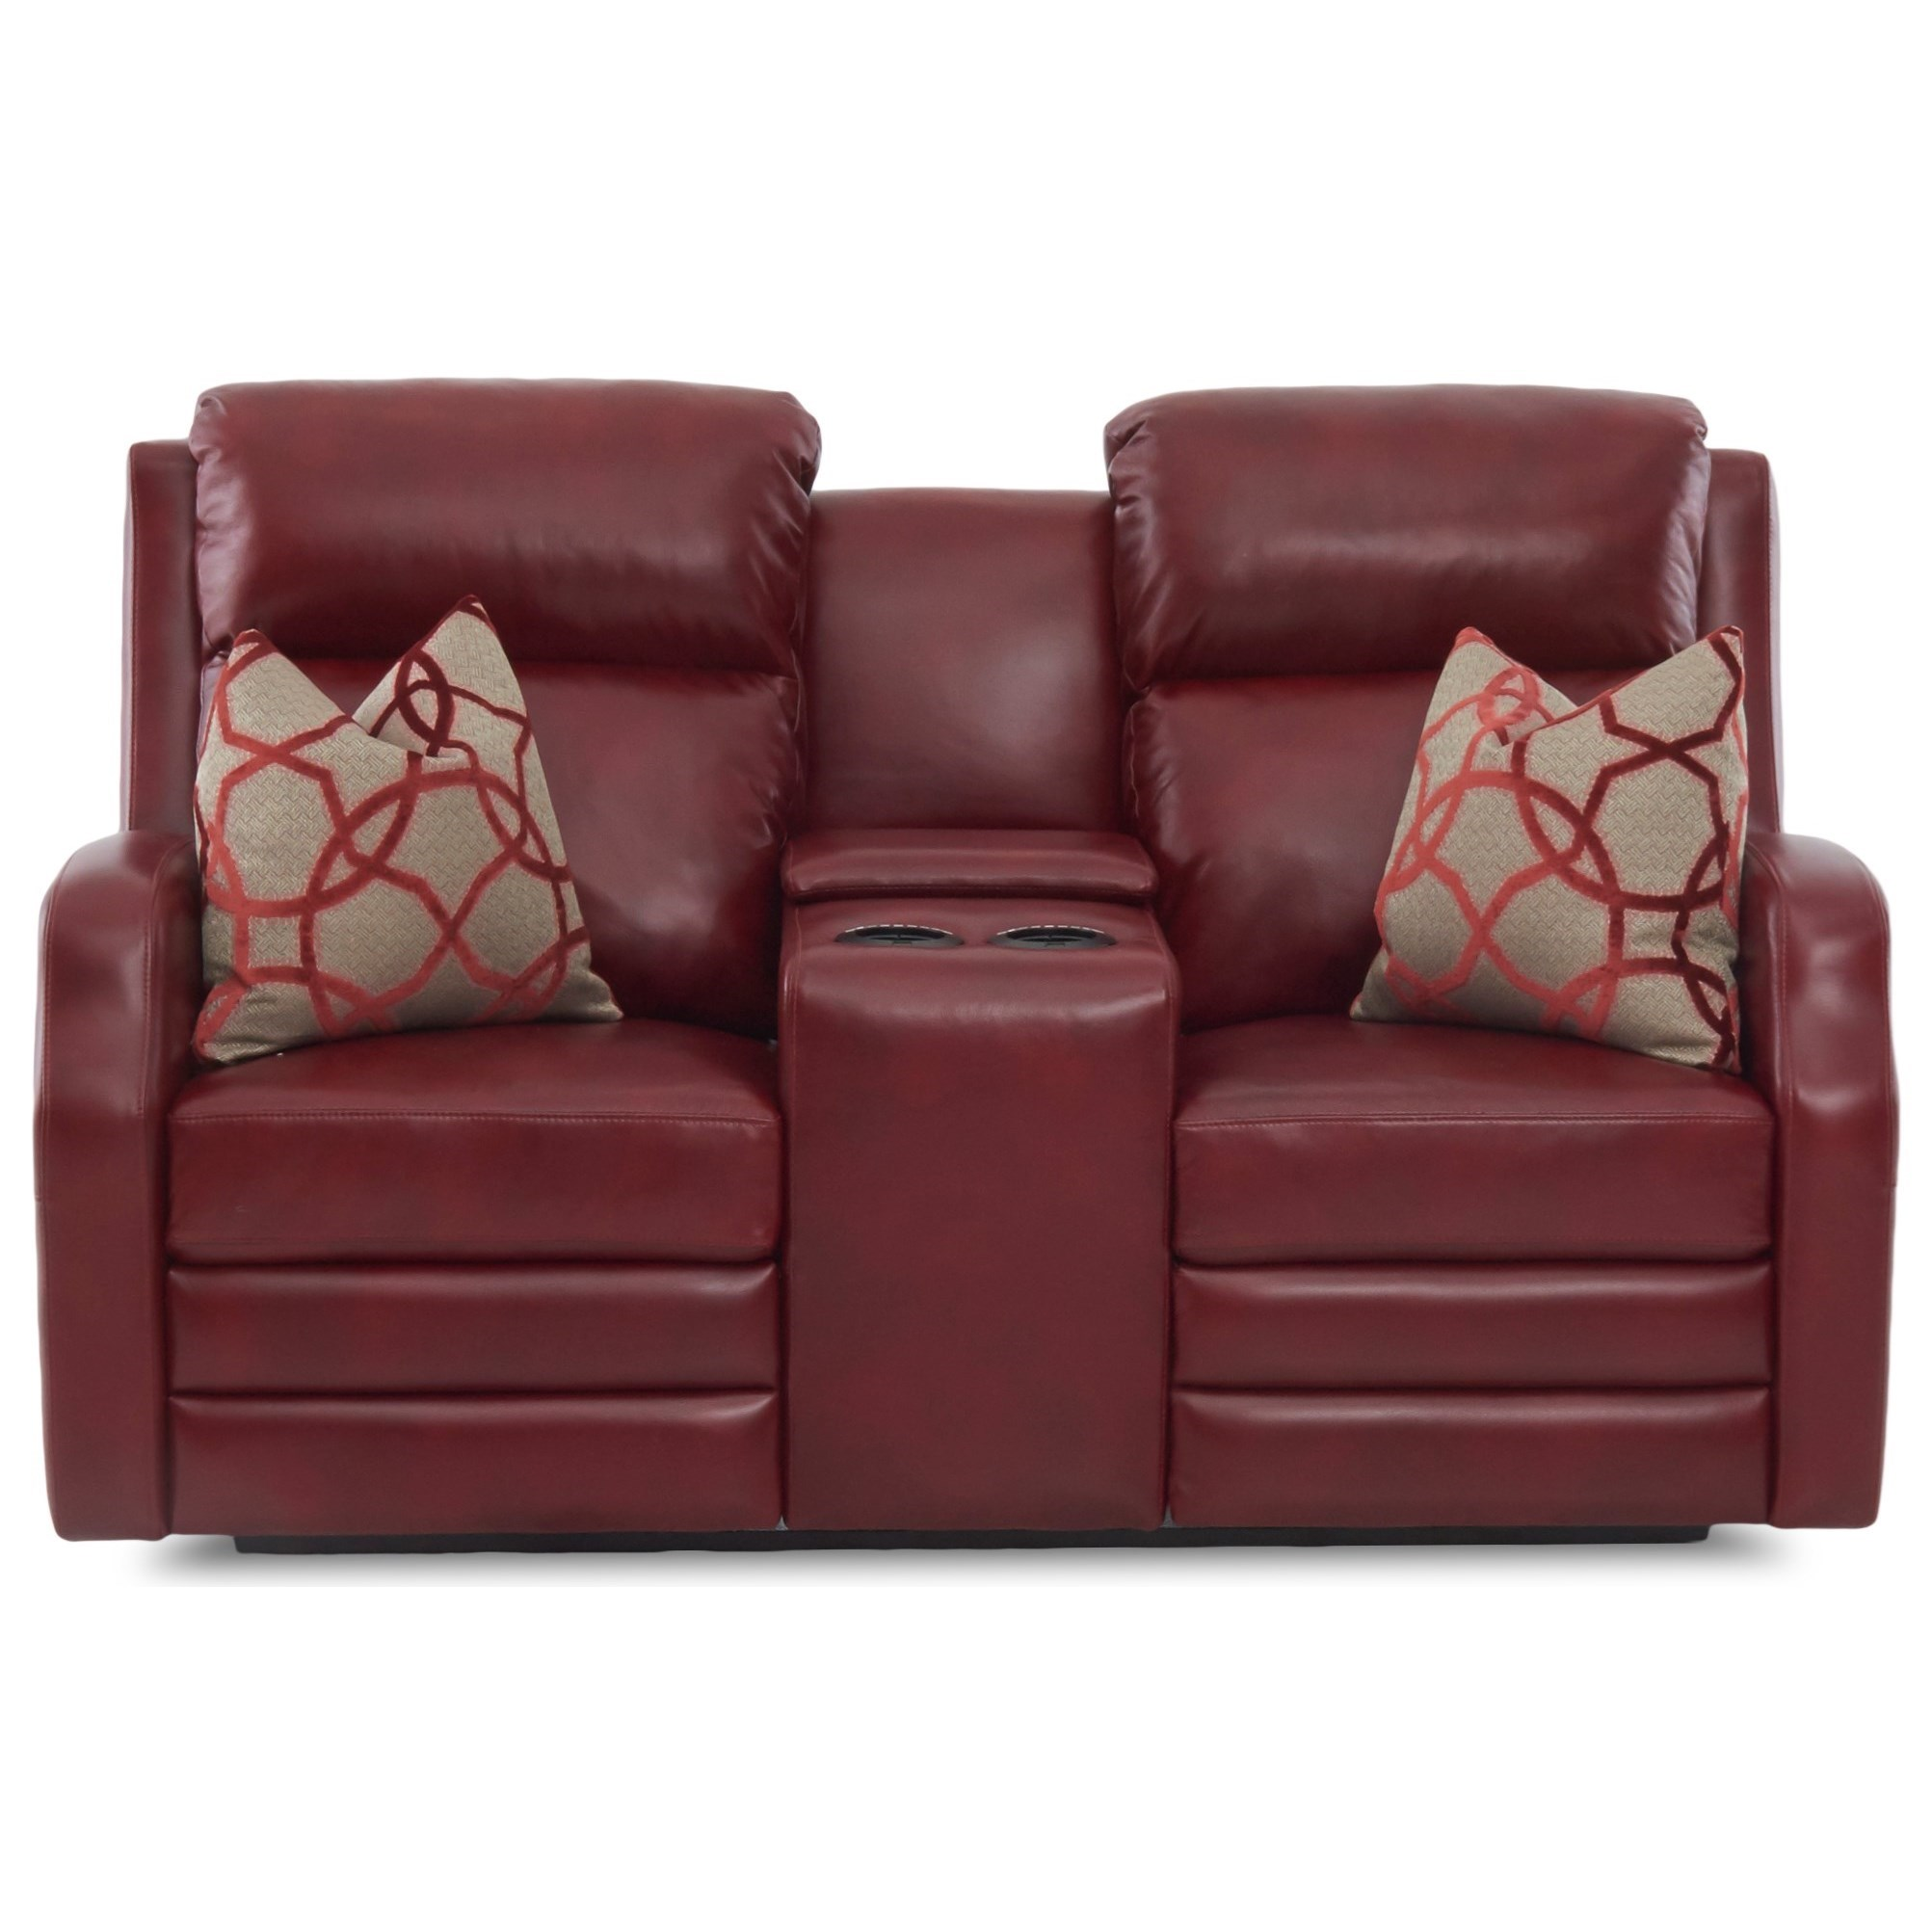 Kamiah Pwr Console Recl Love w/ Pillows Pwr Head by Klaussner at Lapeer Furniture & Mattress Center